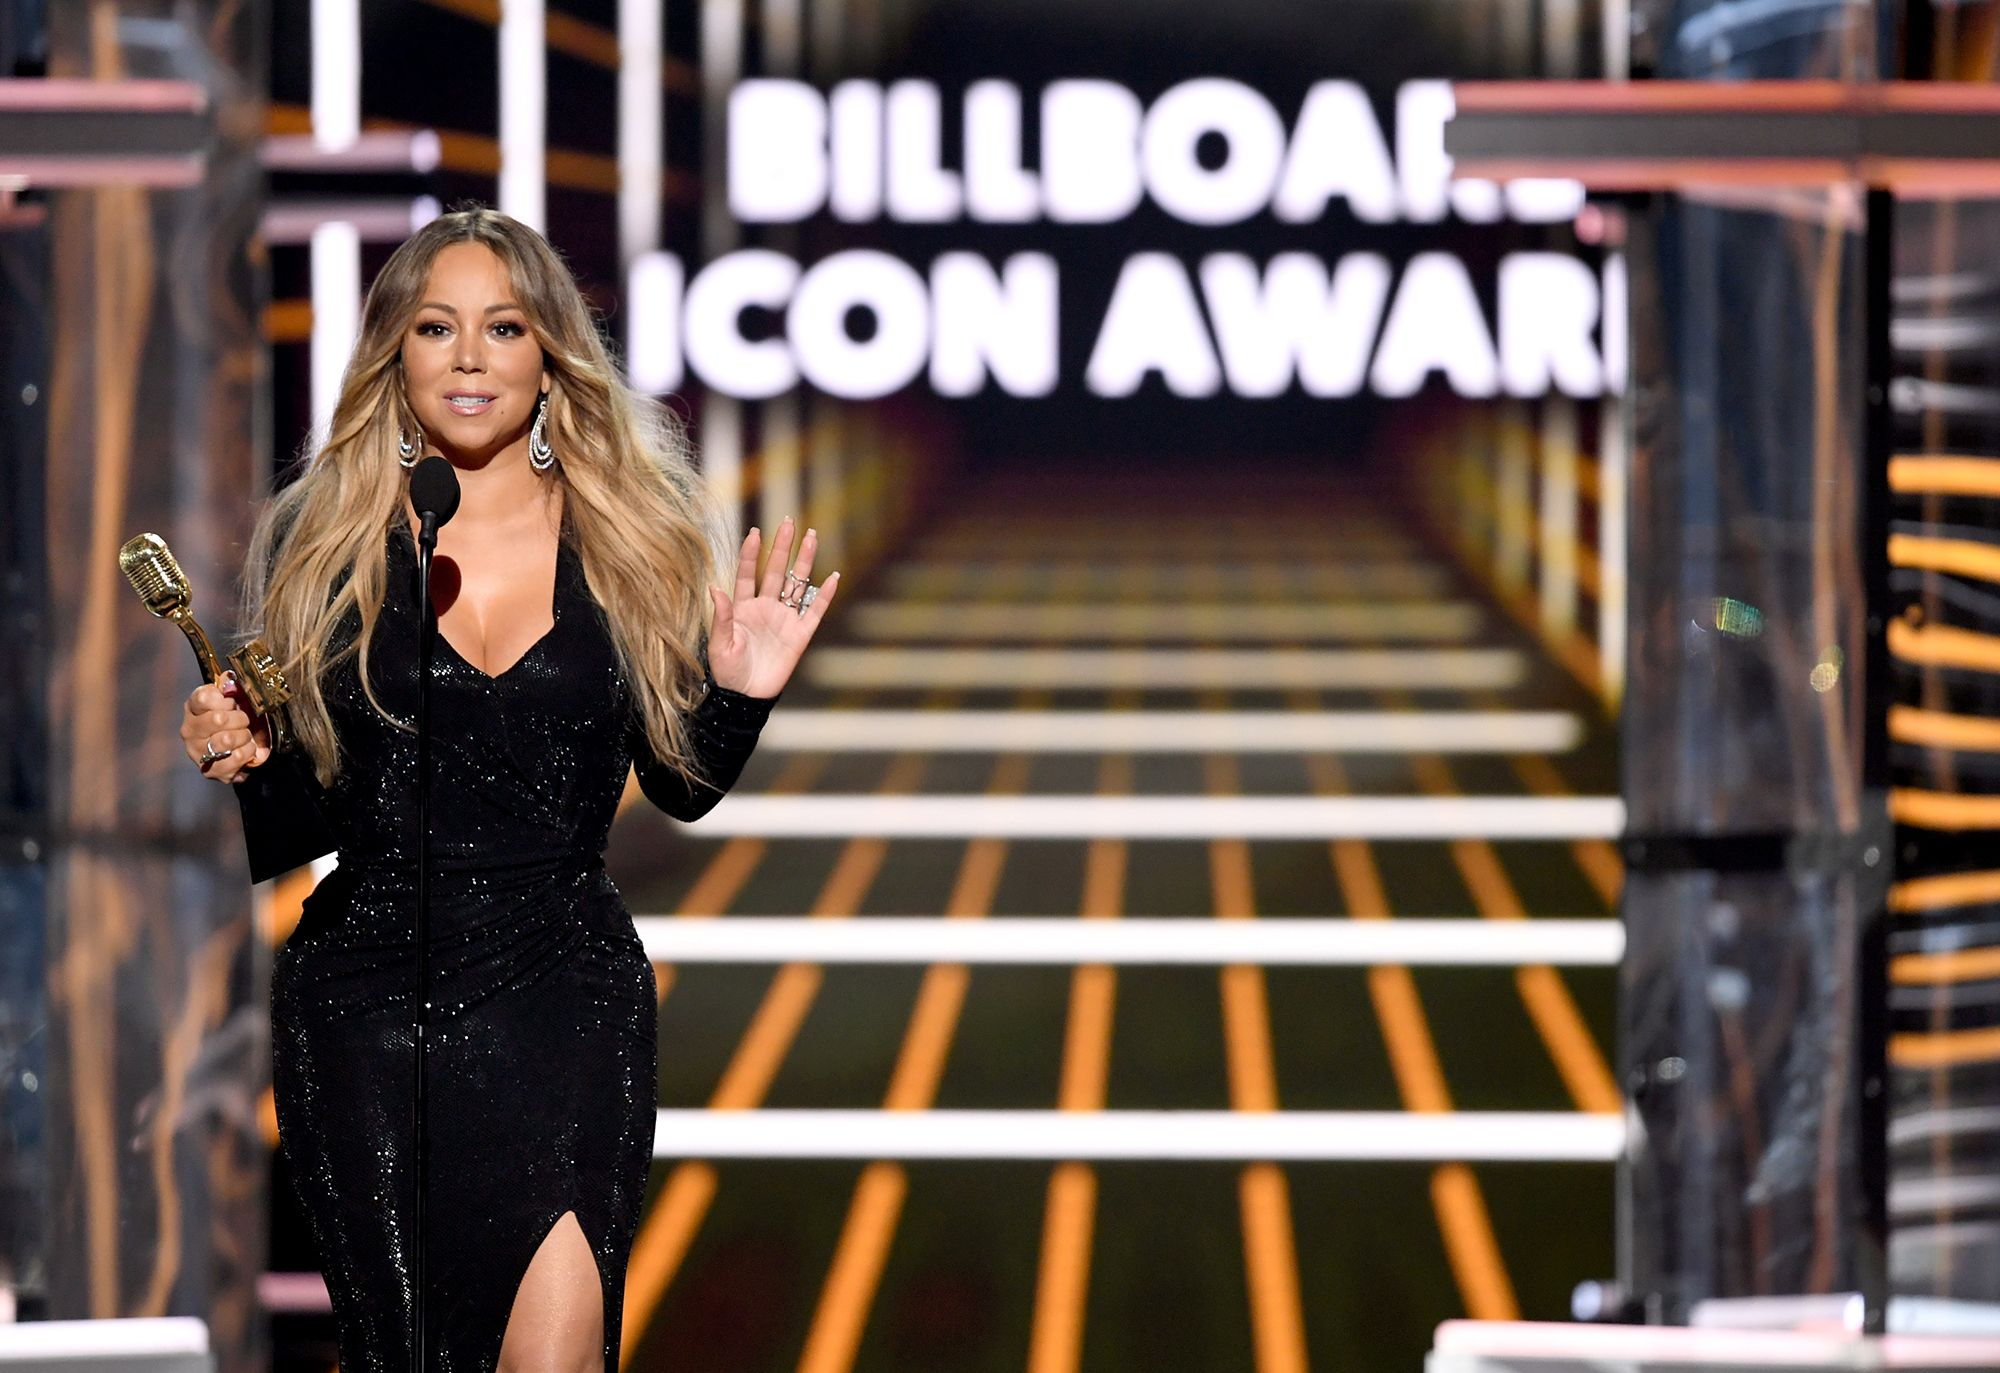 Mariah Carey's Billboard Awards Performance Is a Lesson in Confidence